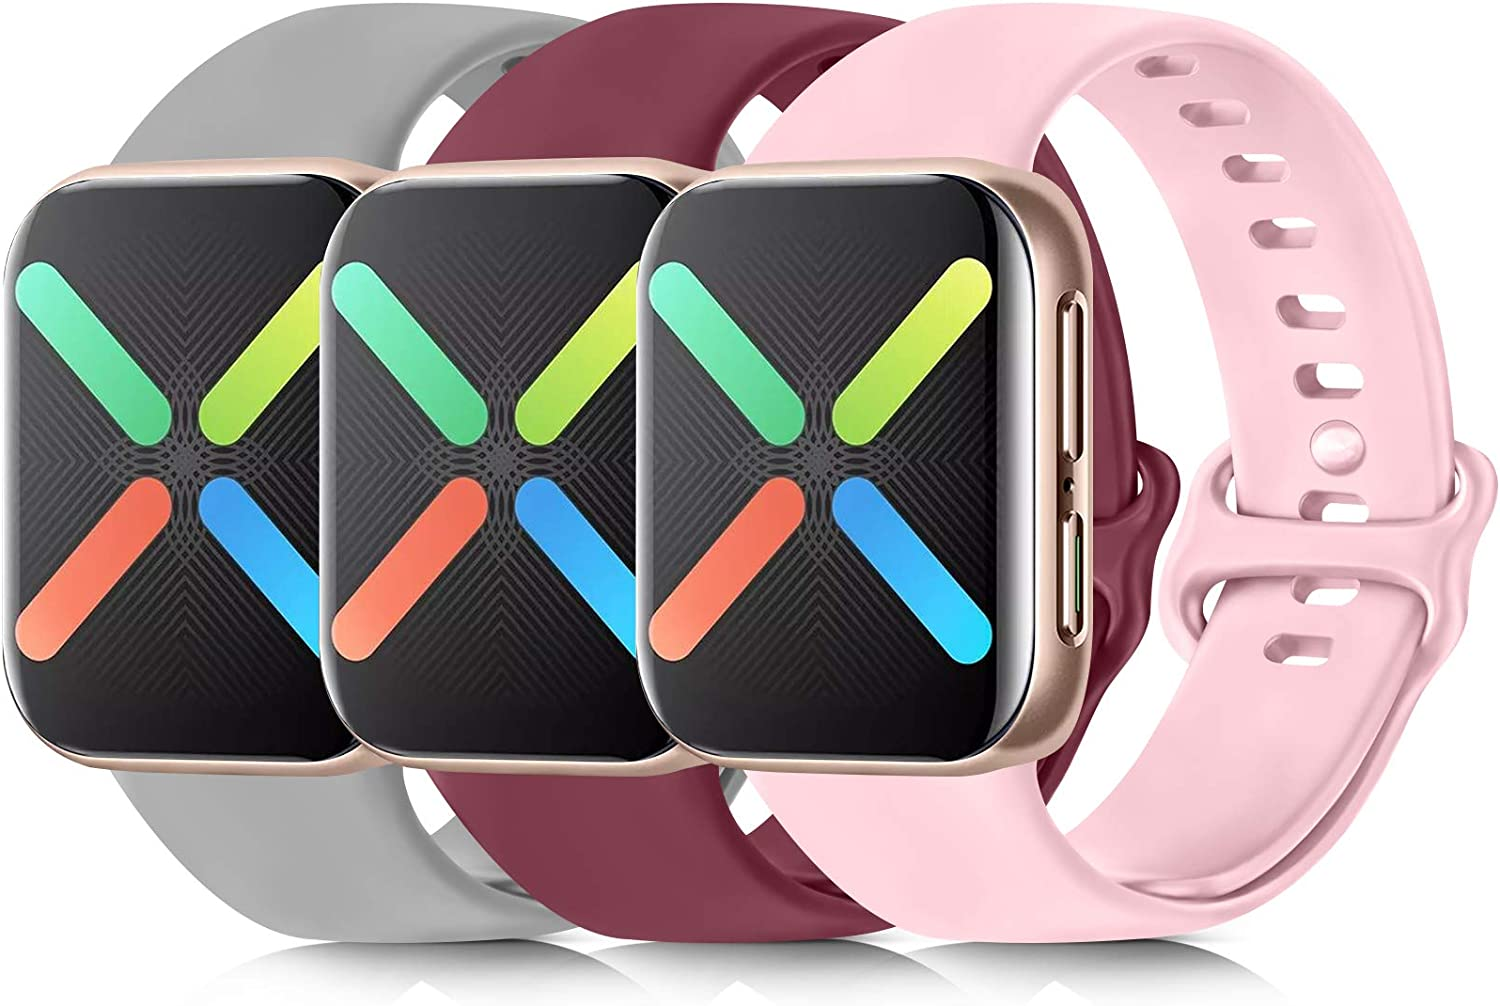 [3 Pack] Silicone Bands Compatible with Apple Watch Bands 38mm 40mm 42mm 44mm, Soft Wristbands Compatible with iWatch Bands (Wine Red/Gray/Pink, 38mm/40mm-S/M)